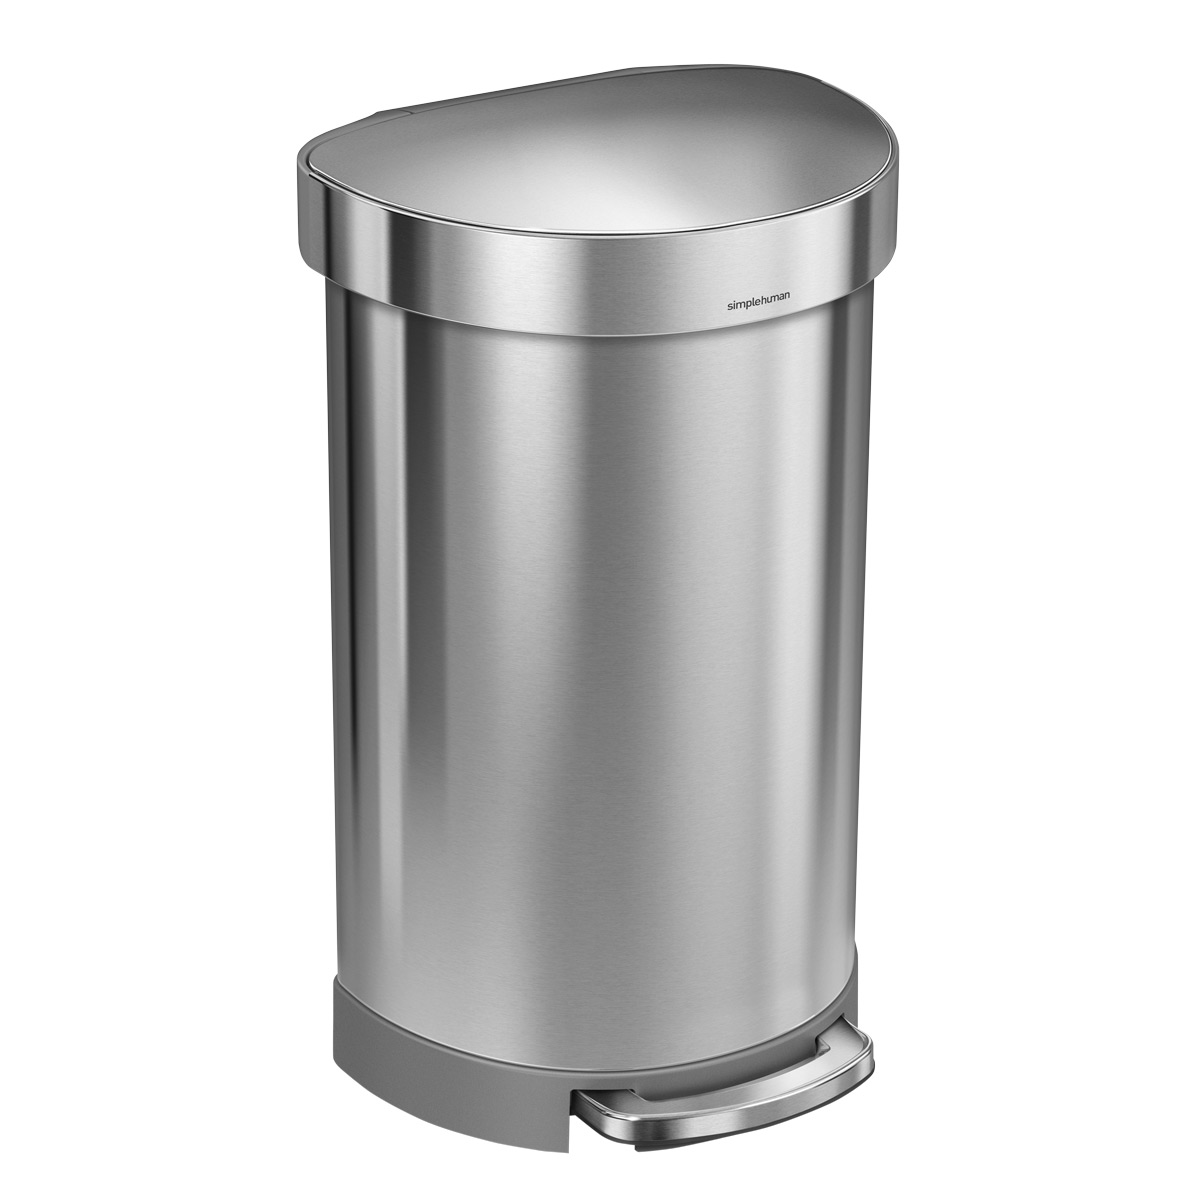 simplehuman Stainless Steel 12 gal. Semi Round Step Trash Can